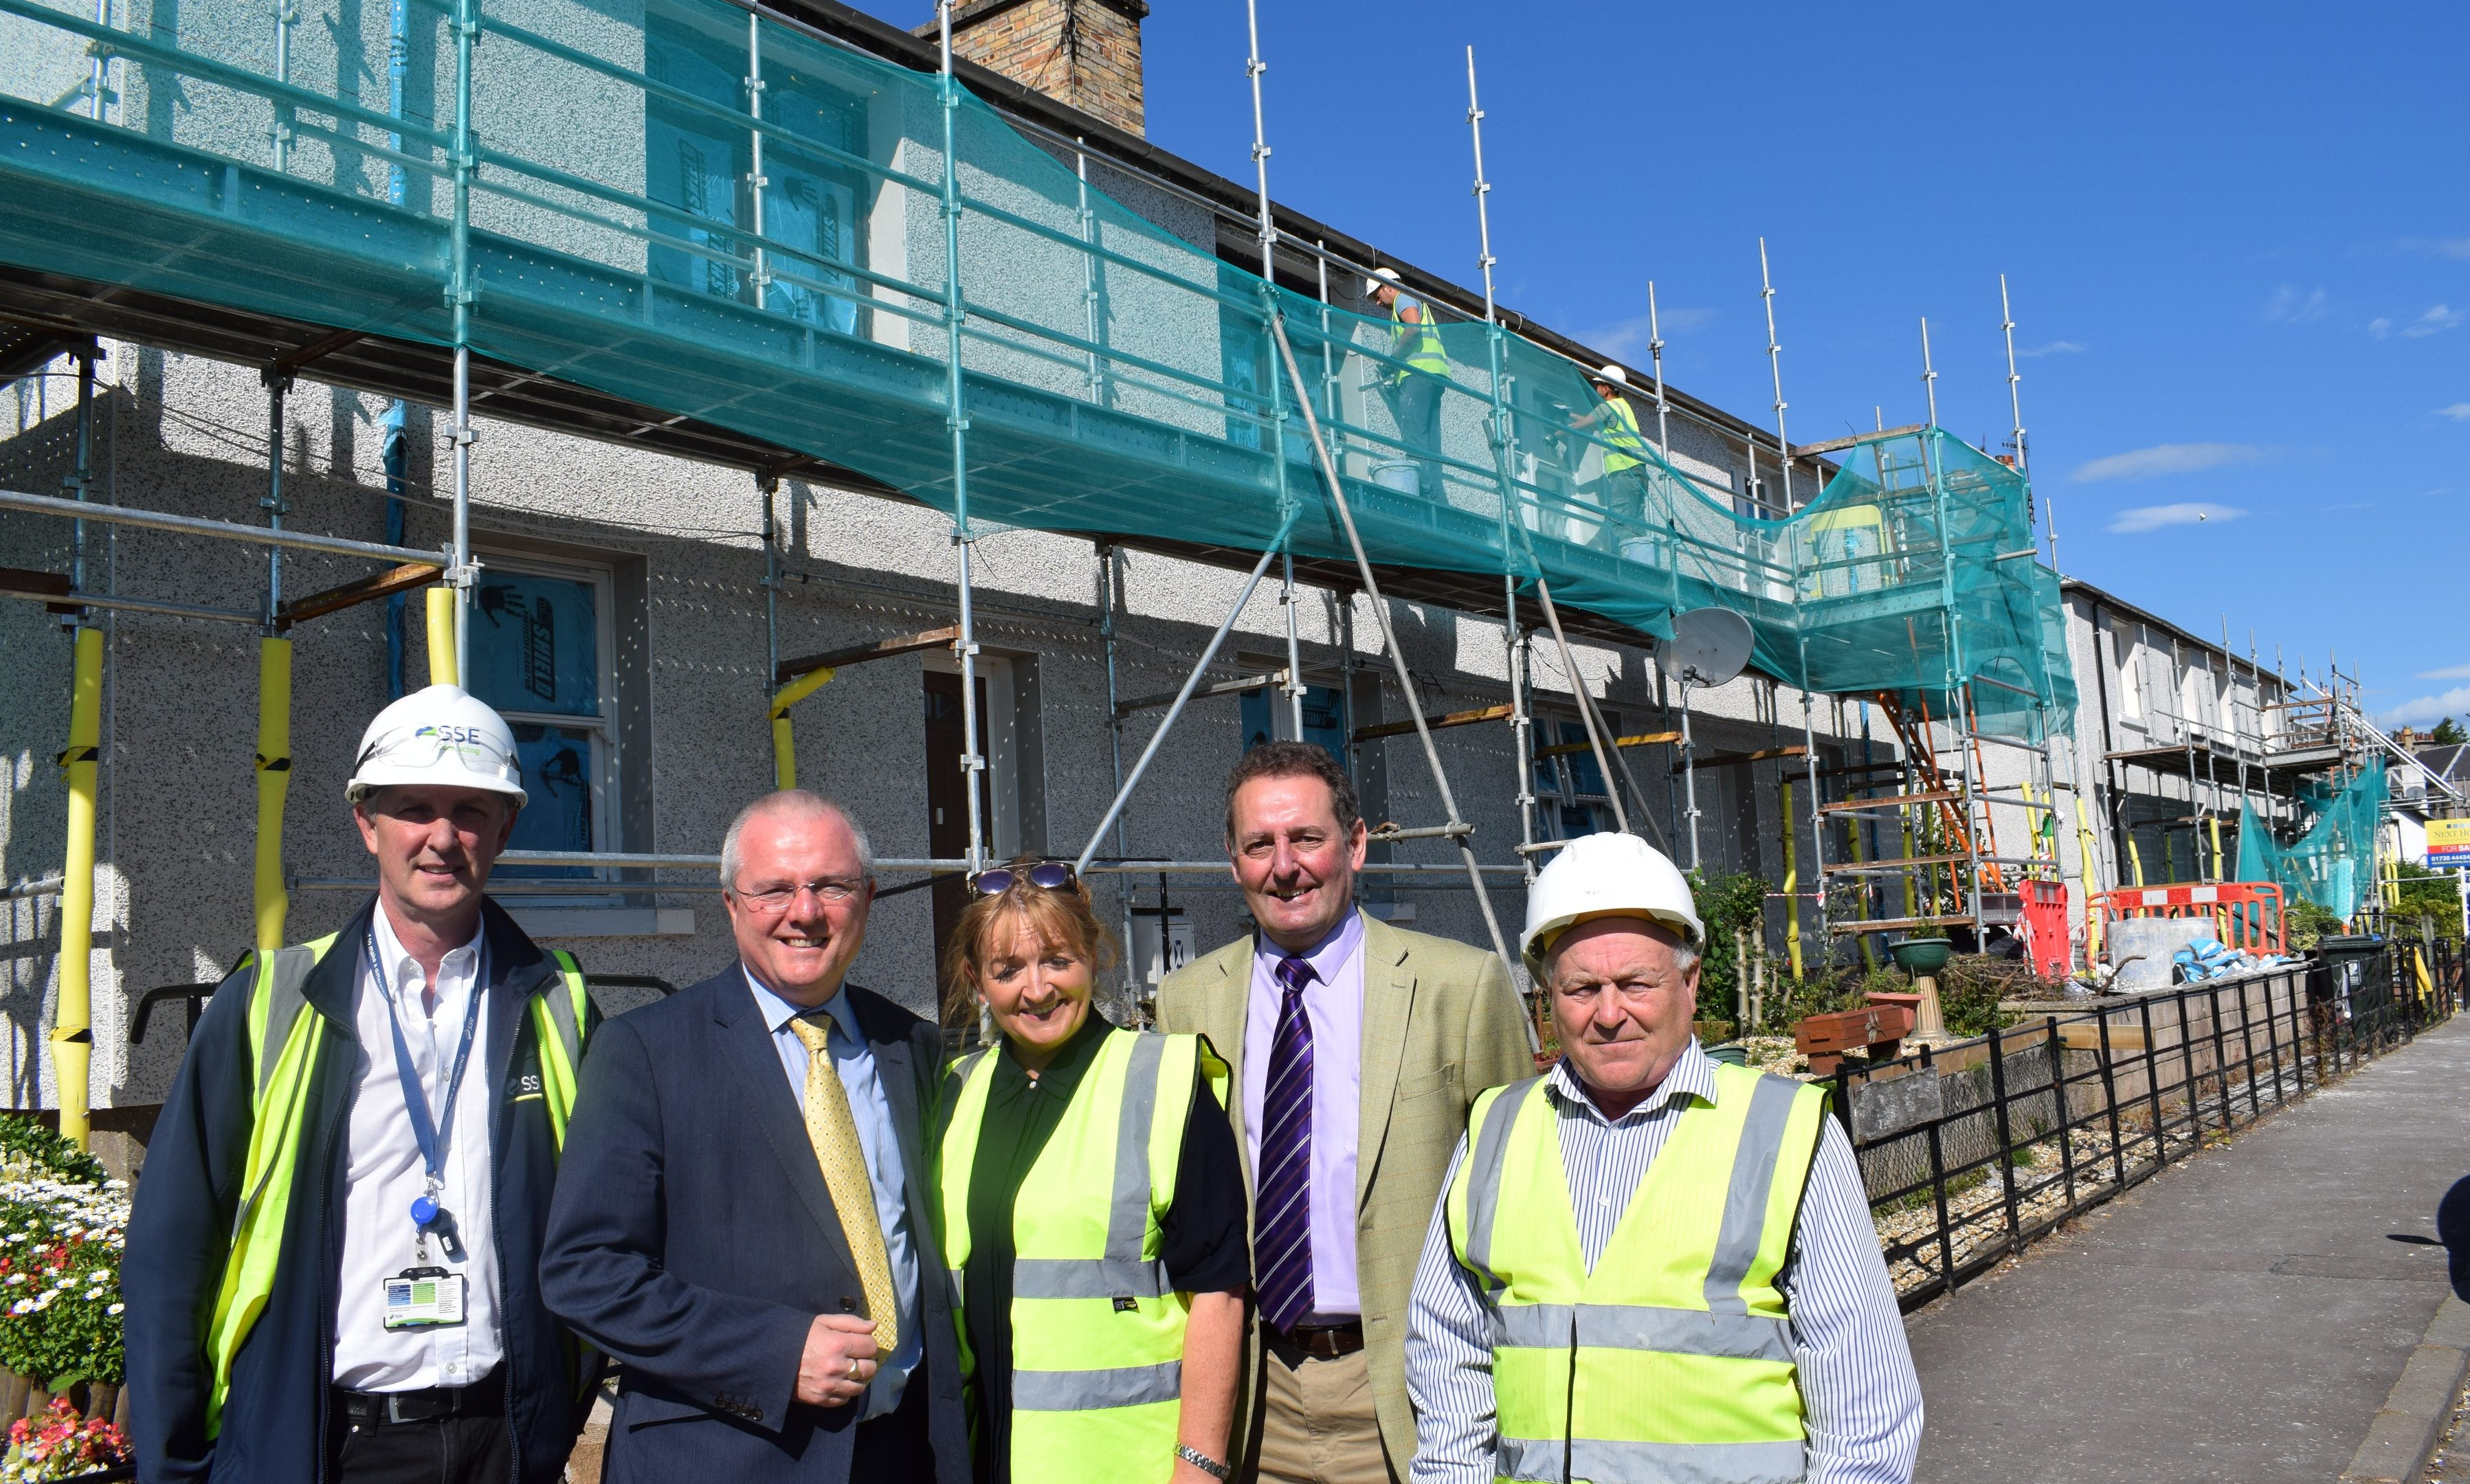 New insulation roll-out across Perthshire: (l-r): Graham Heron, Project Supervisor SSE; Cllr Peter Barrett; Marion Gracie from contractor SERS; Cllr Harry Coates; Tommy Dunn, Site Manager, SERS.